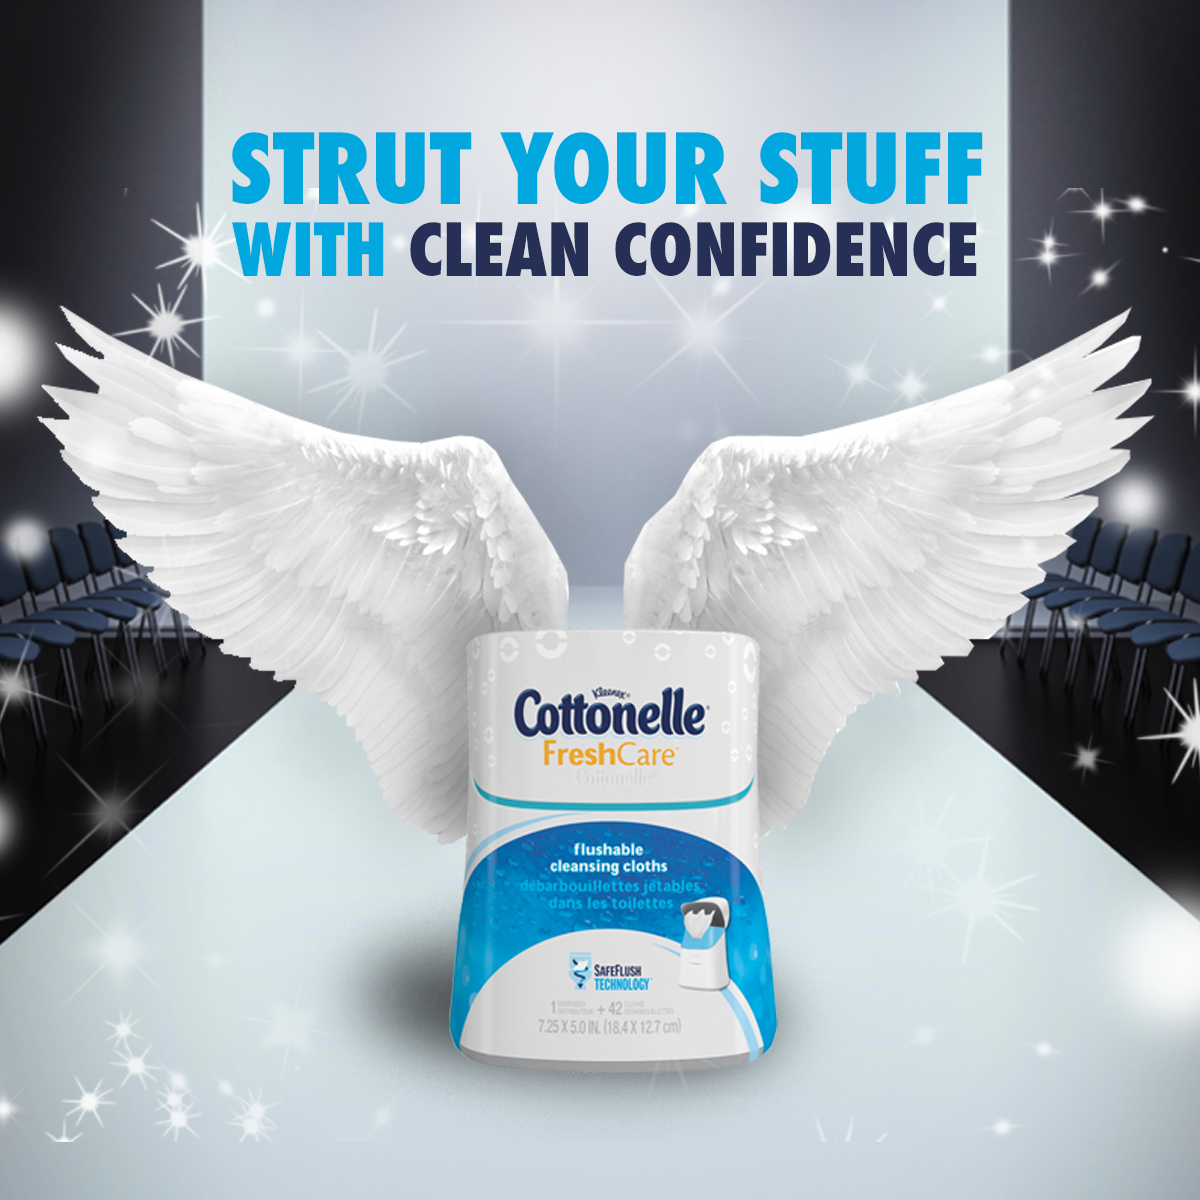 Cottonelle- Real Time Post for Victoria's Secret Show